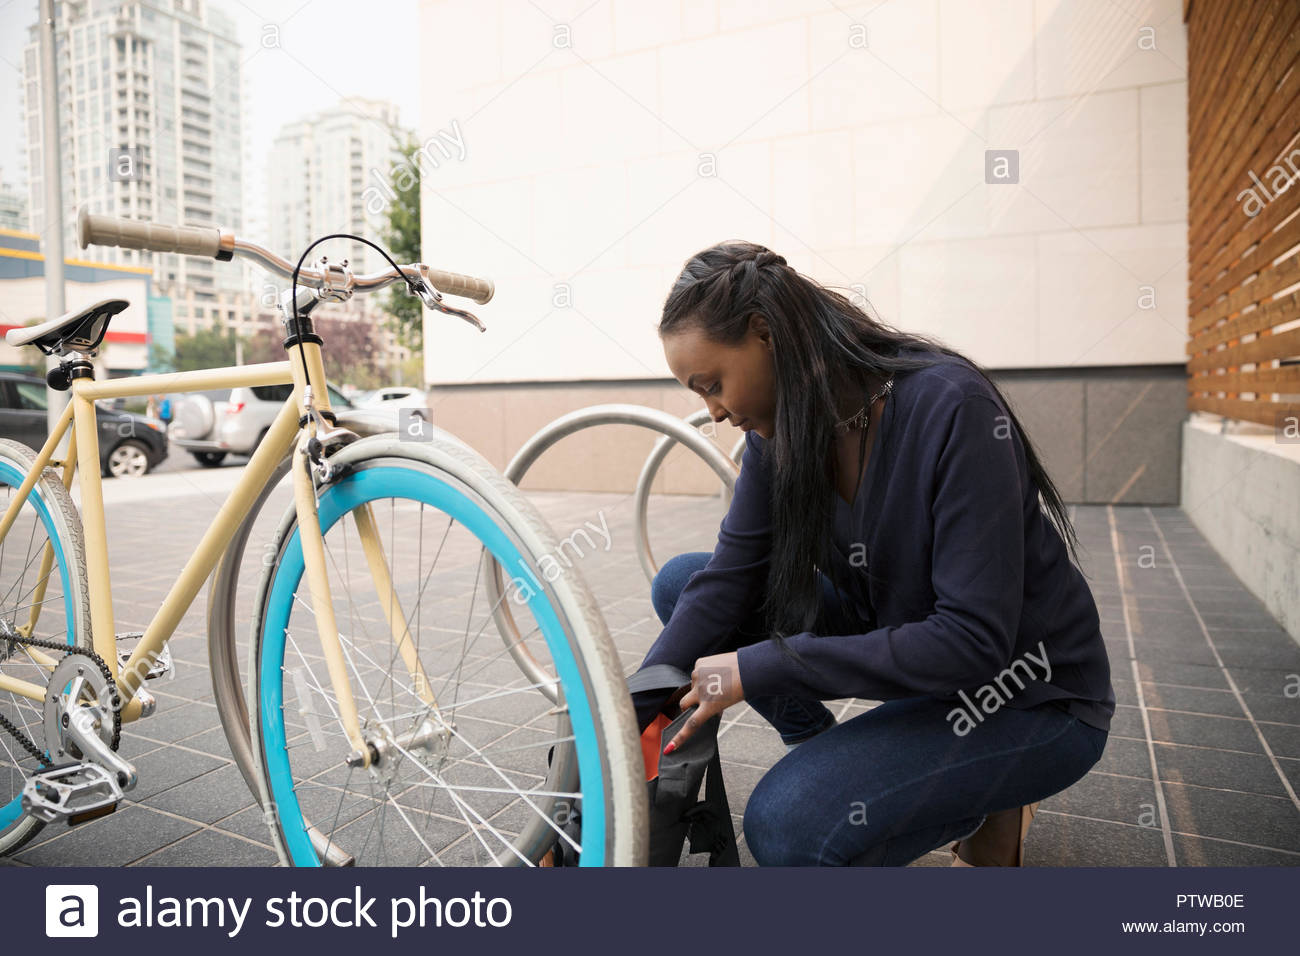 Businesswoman commuter with bicycle - Stock Image